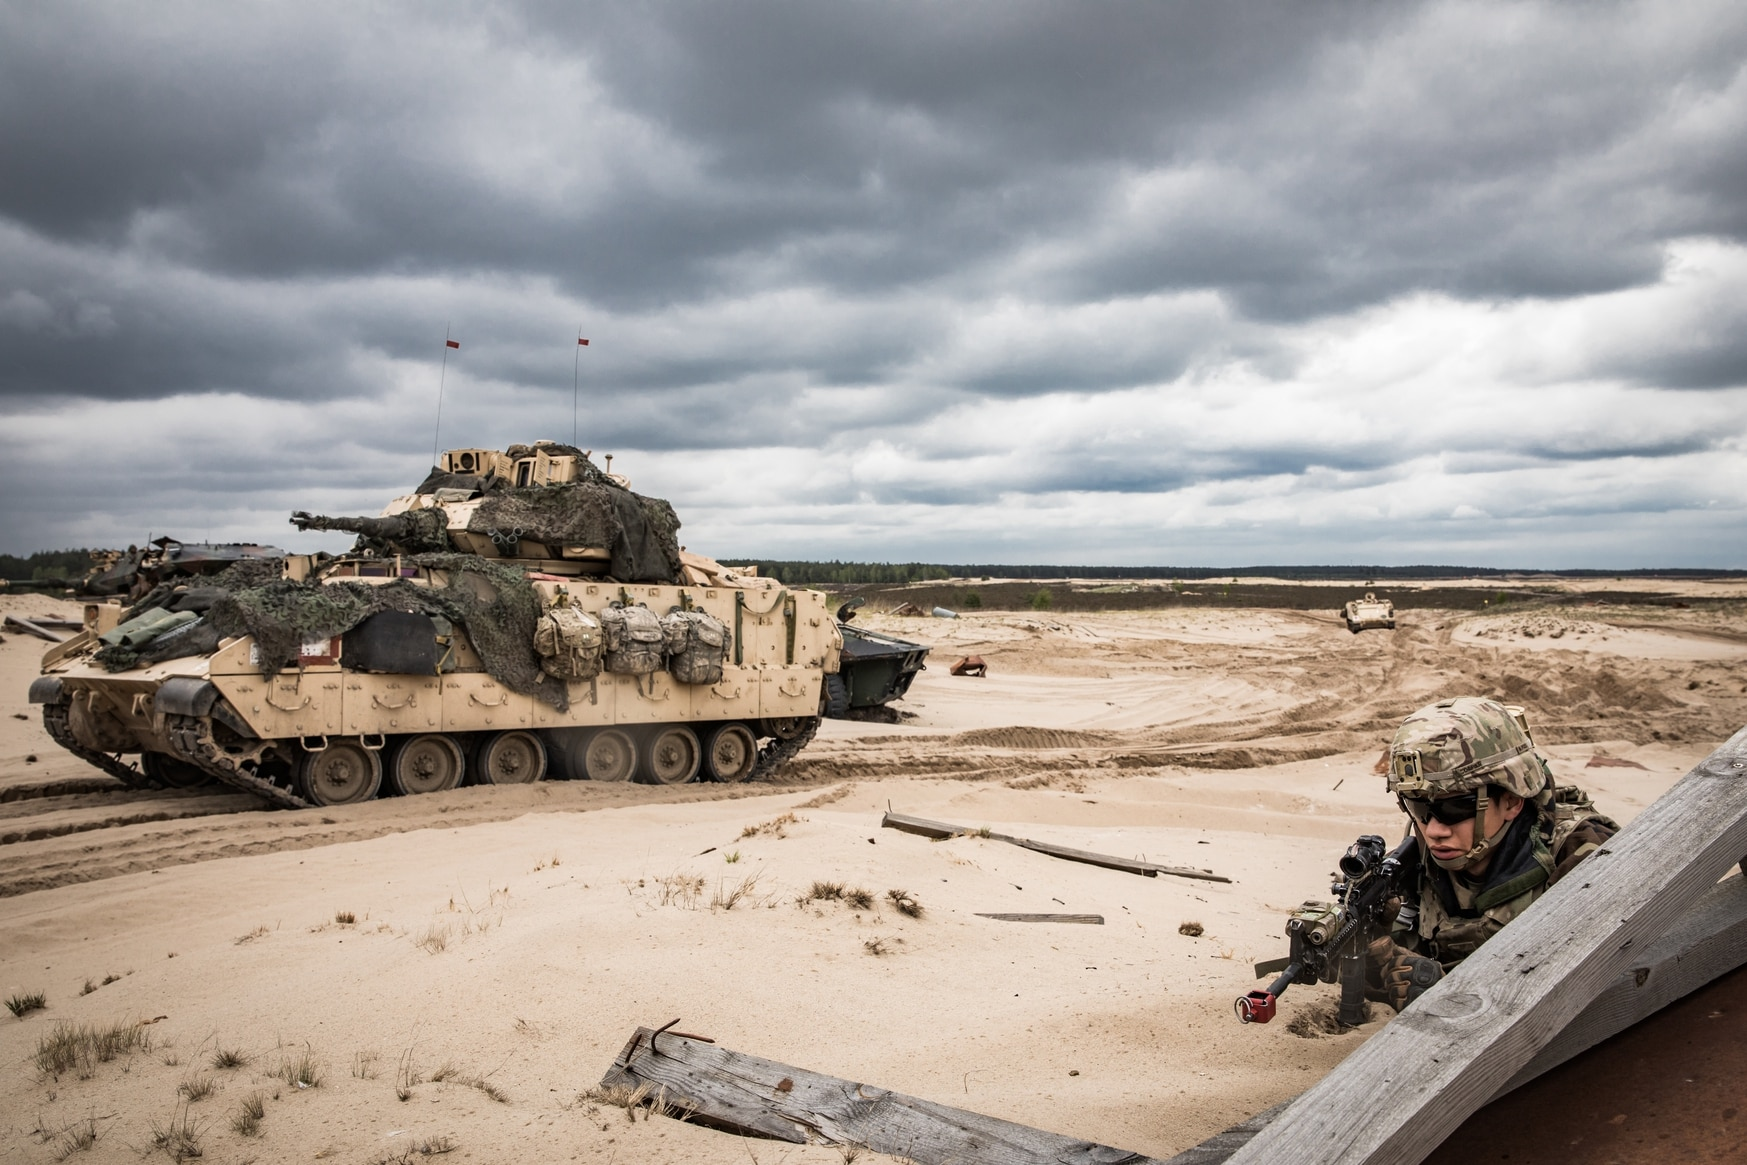 A U.S. Army soldier conducts security next to an M2 Bradley Fighting Vehicle on a range in Trzebień, Poland, during a May 2019 exercise. Soldiers deployed to Poland in support of NATO allies as part of Atlantic Resolve. (Sgt. Jeremiah Woods/U.S. Army)